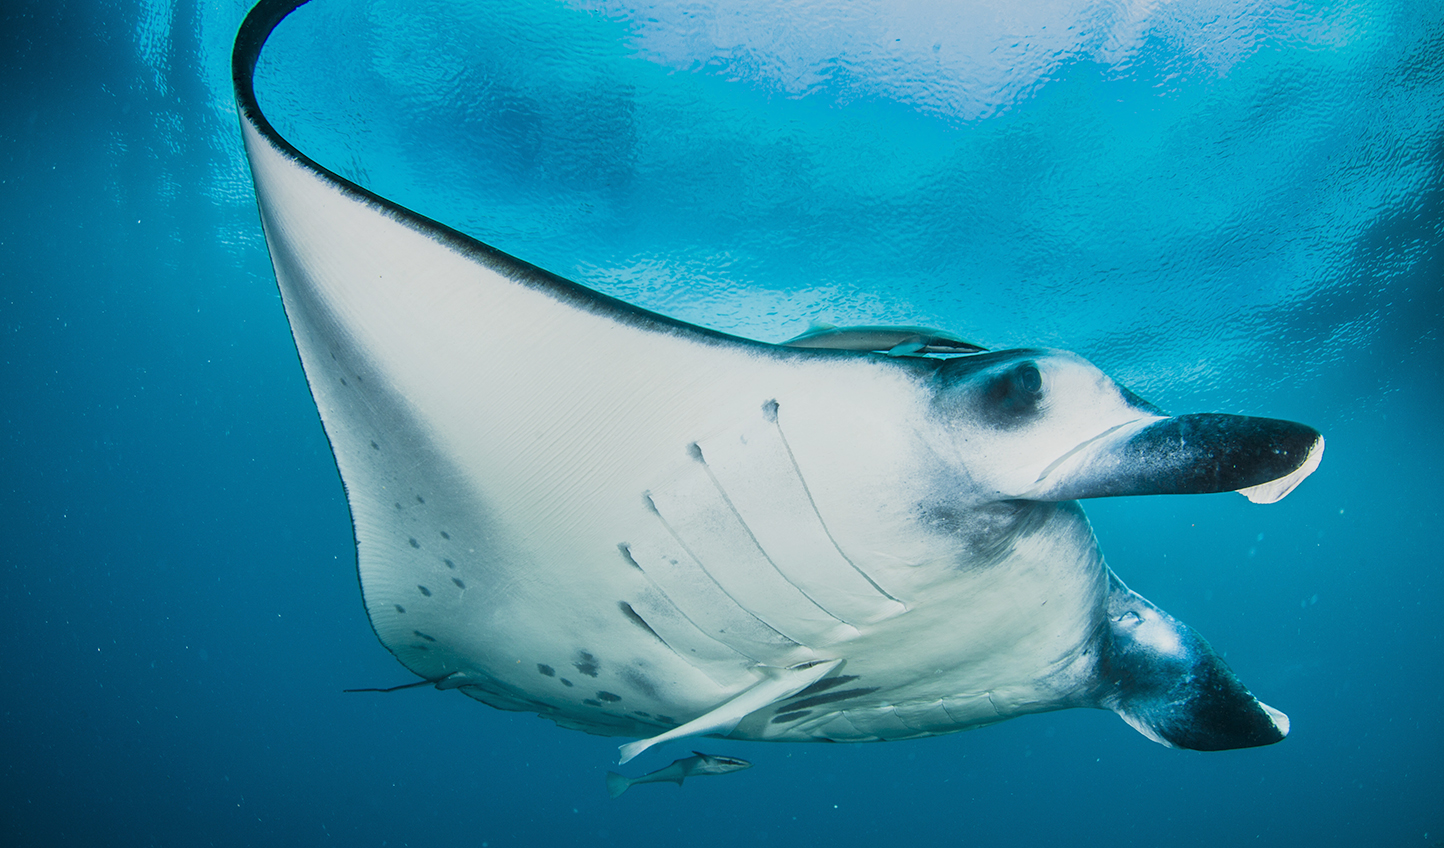 Dive or snorkel over the sandy bottom and wait for giant Manta Rays to pass.